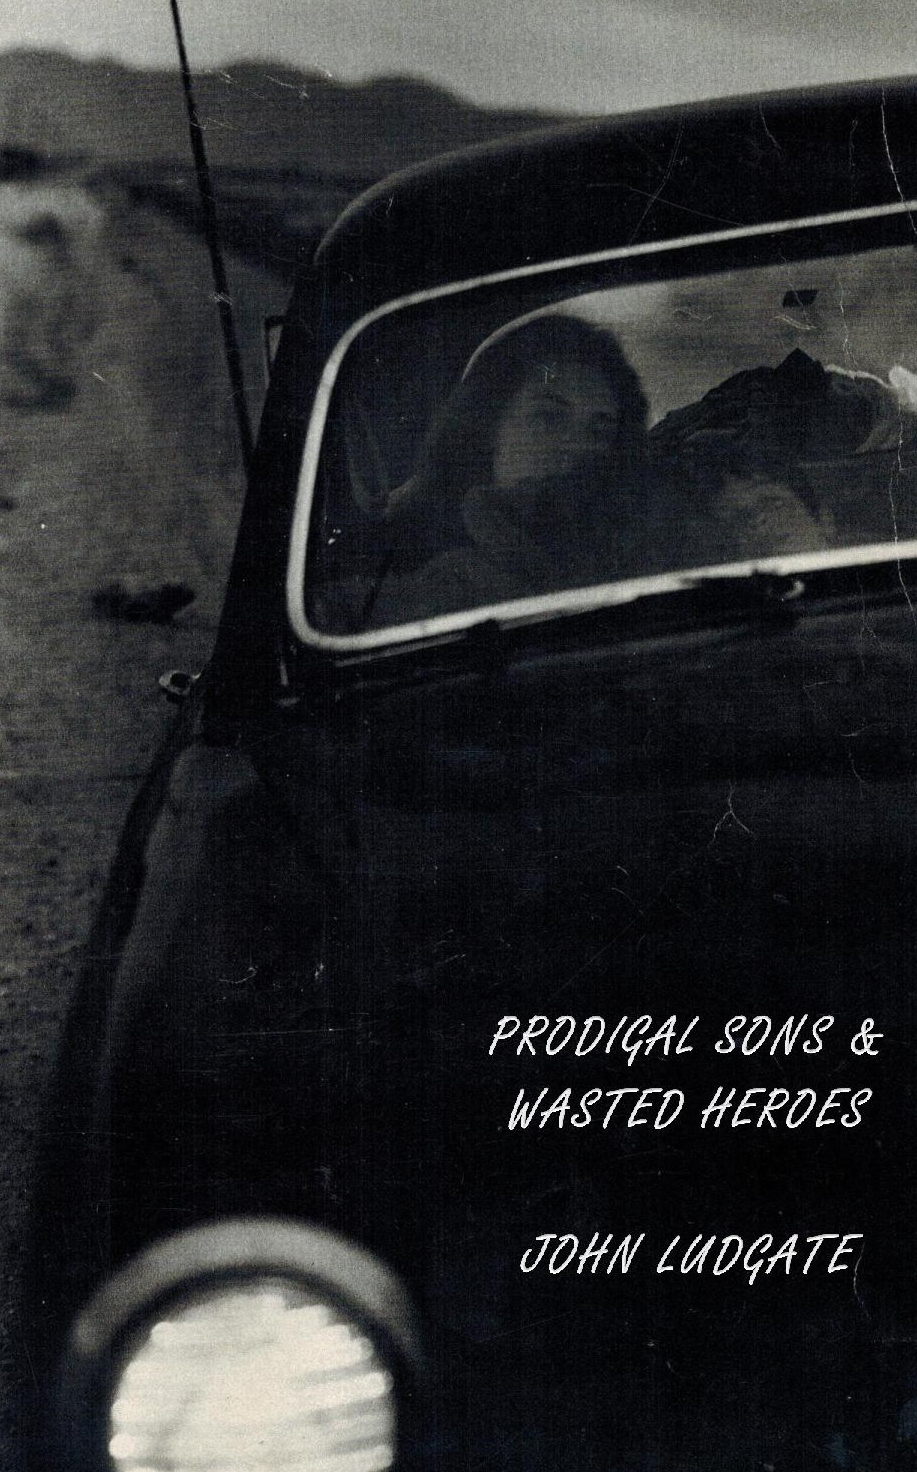 Prodigal Sons & Wasted Heroes